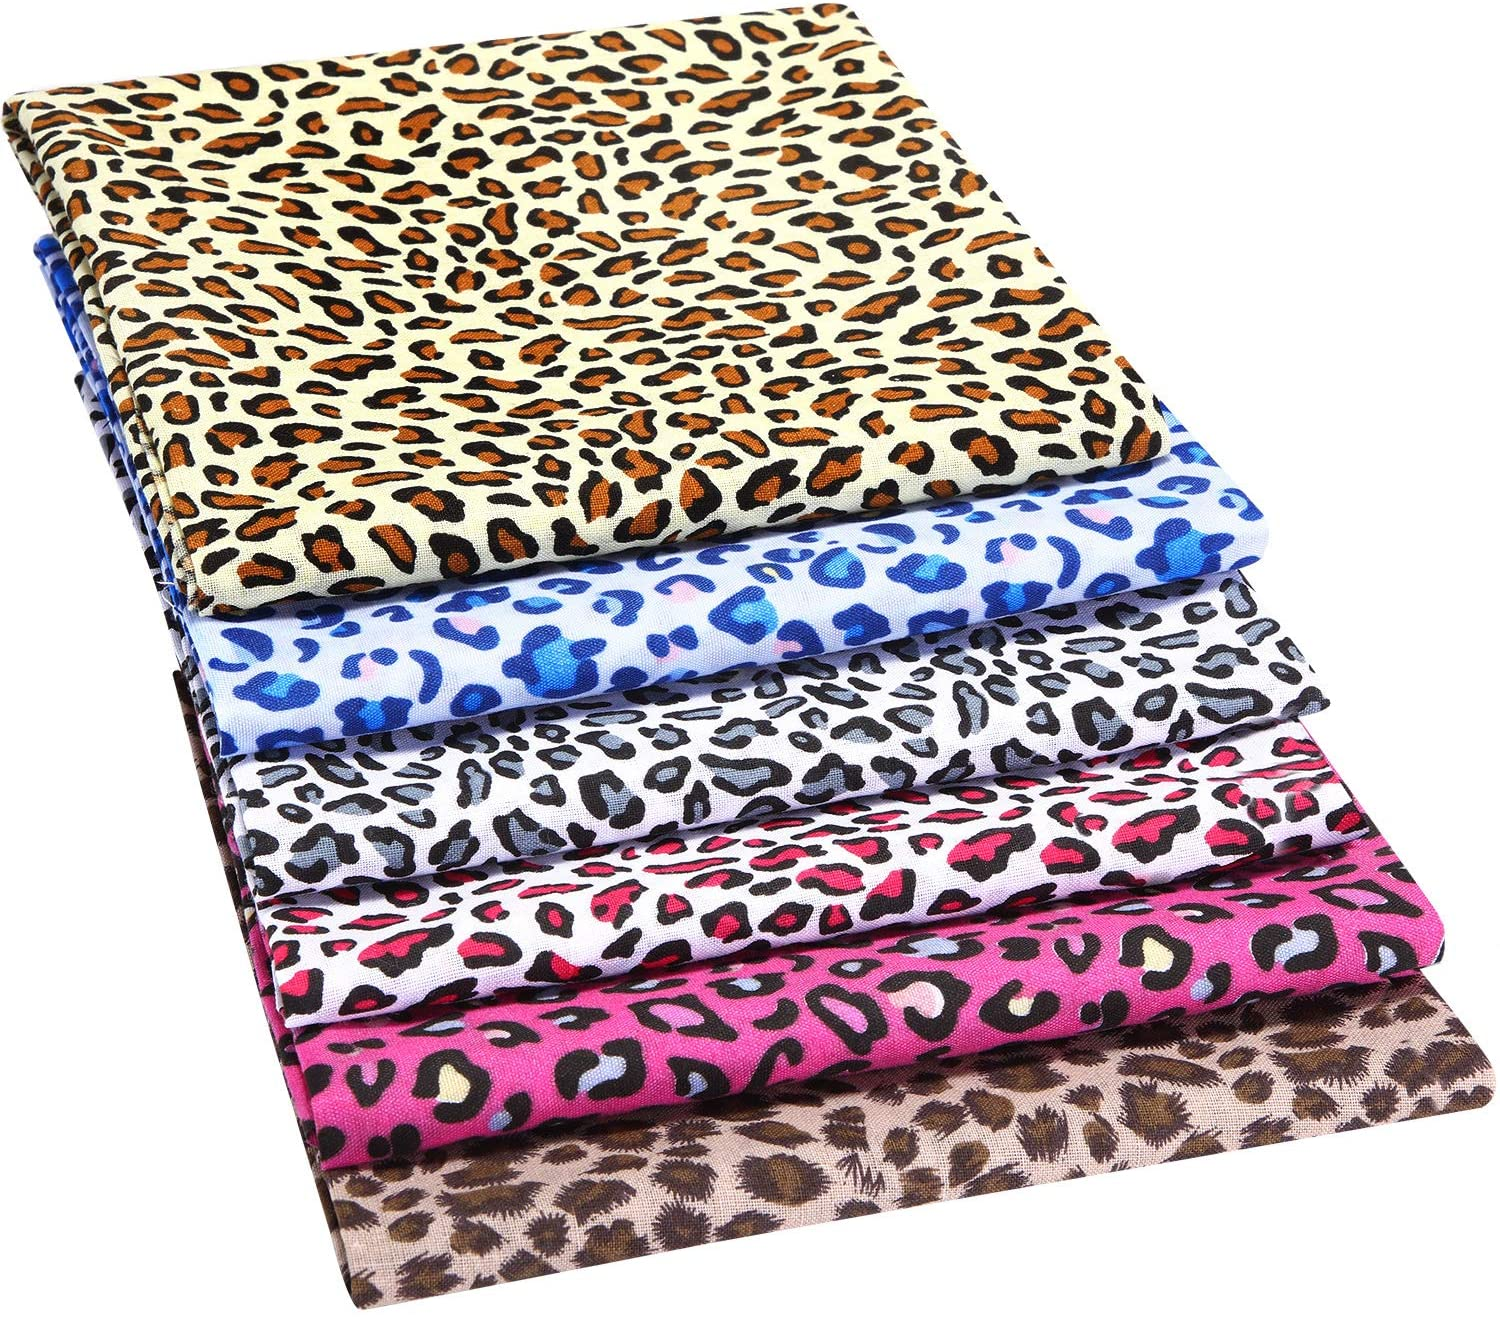 6 PIECES 19 X 19 INCH LEOPARD PRINT FABRIC ANIMAL LEOPARD QUILTING FABRIC COTTON PATCHWORK SQUARES BUNDLE SEWING CRAFT FABRIC FOR HANDMADE CRAFT MAKING SUPPLIES